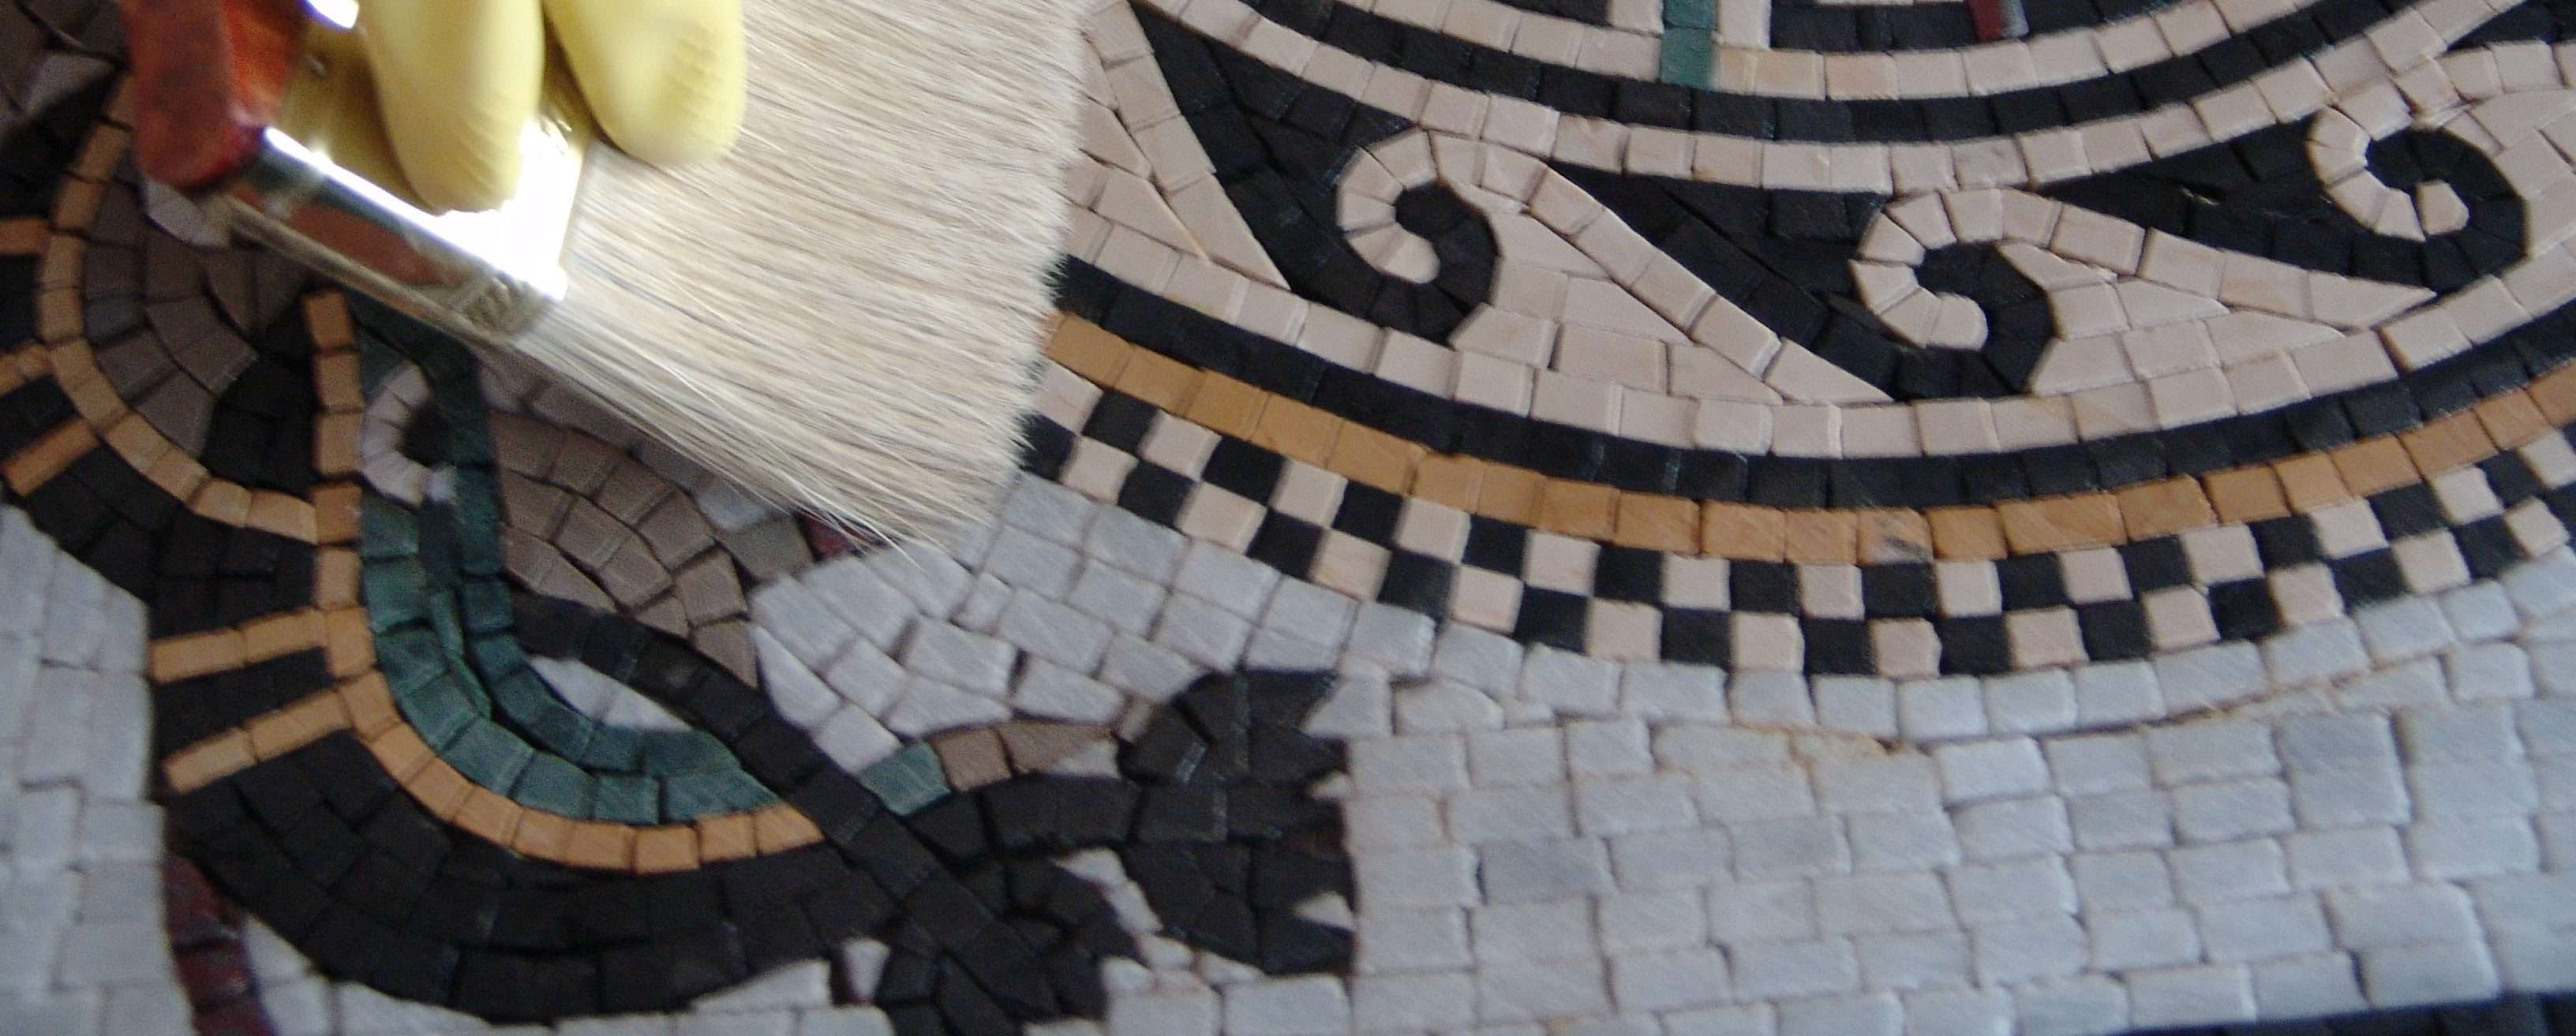 mosaic-art-installation